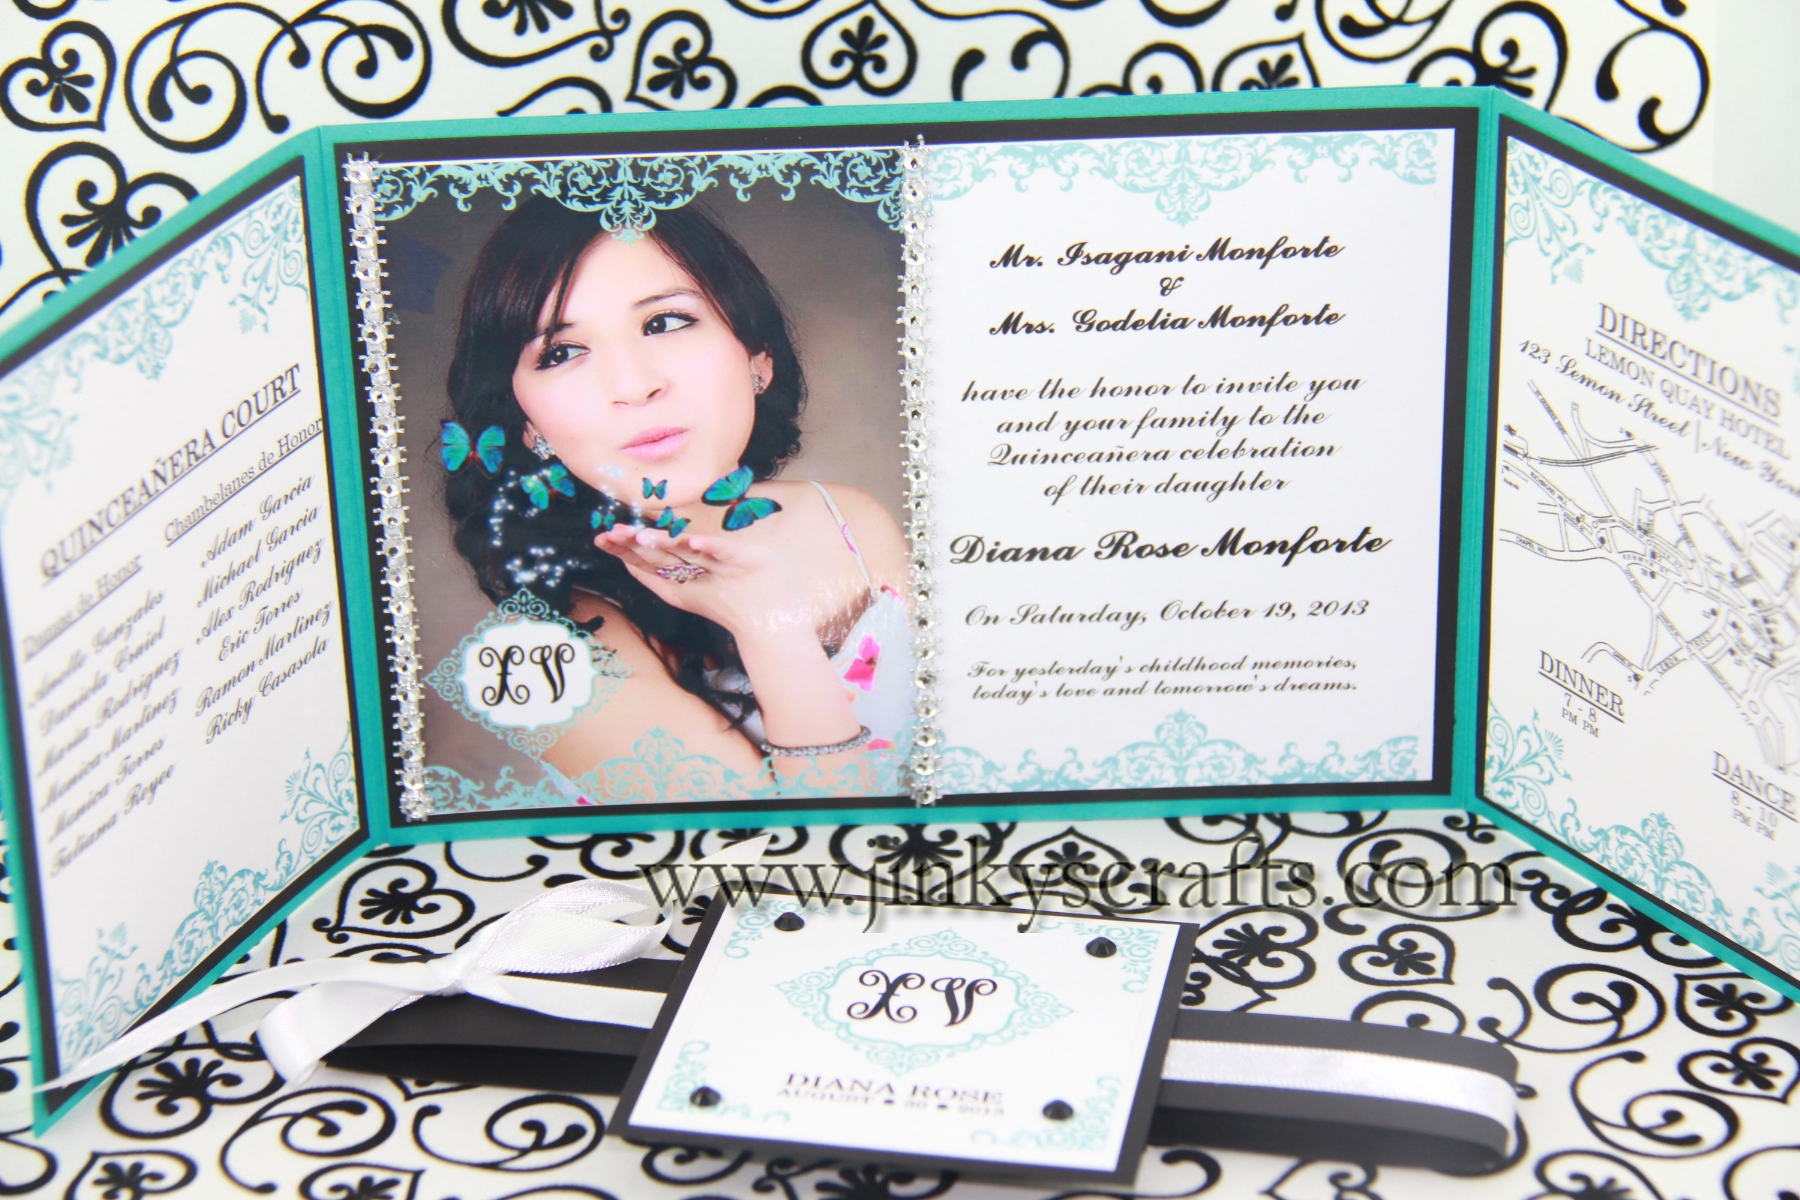 Diy quinceanera invitations gangcraft home jinkys crafts quinceanera invitations stopboris Gallery